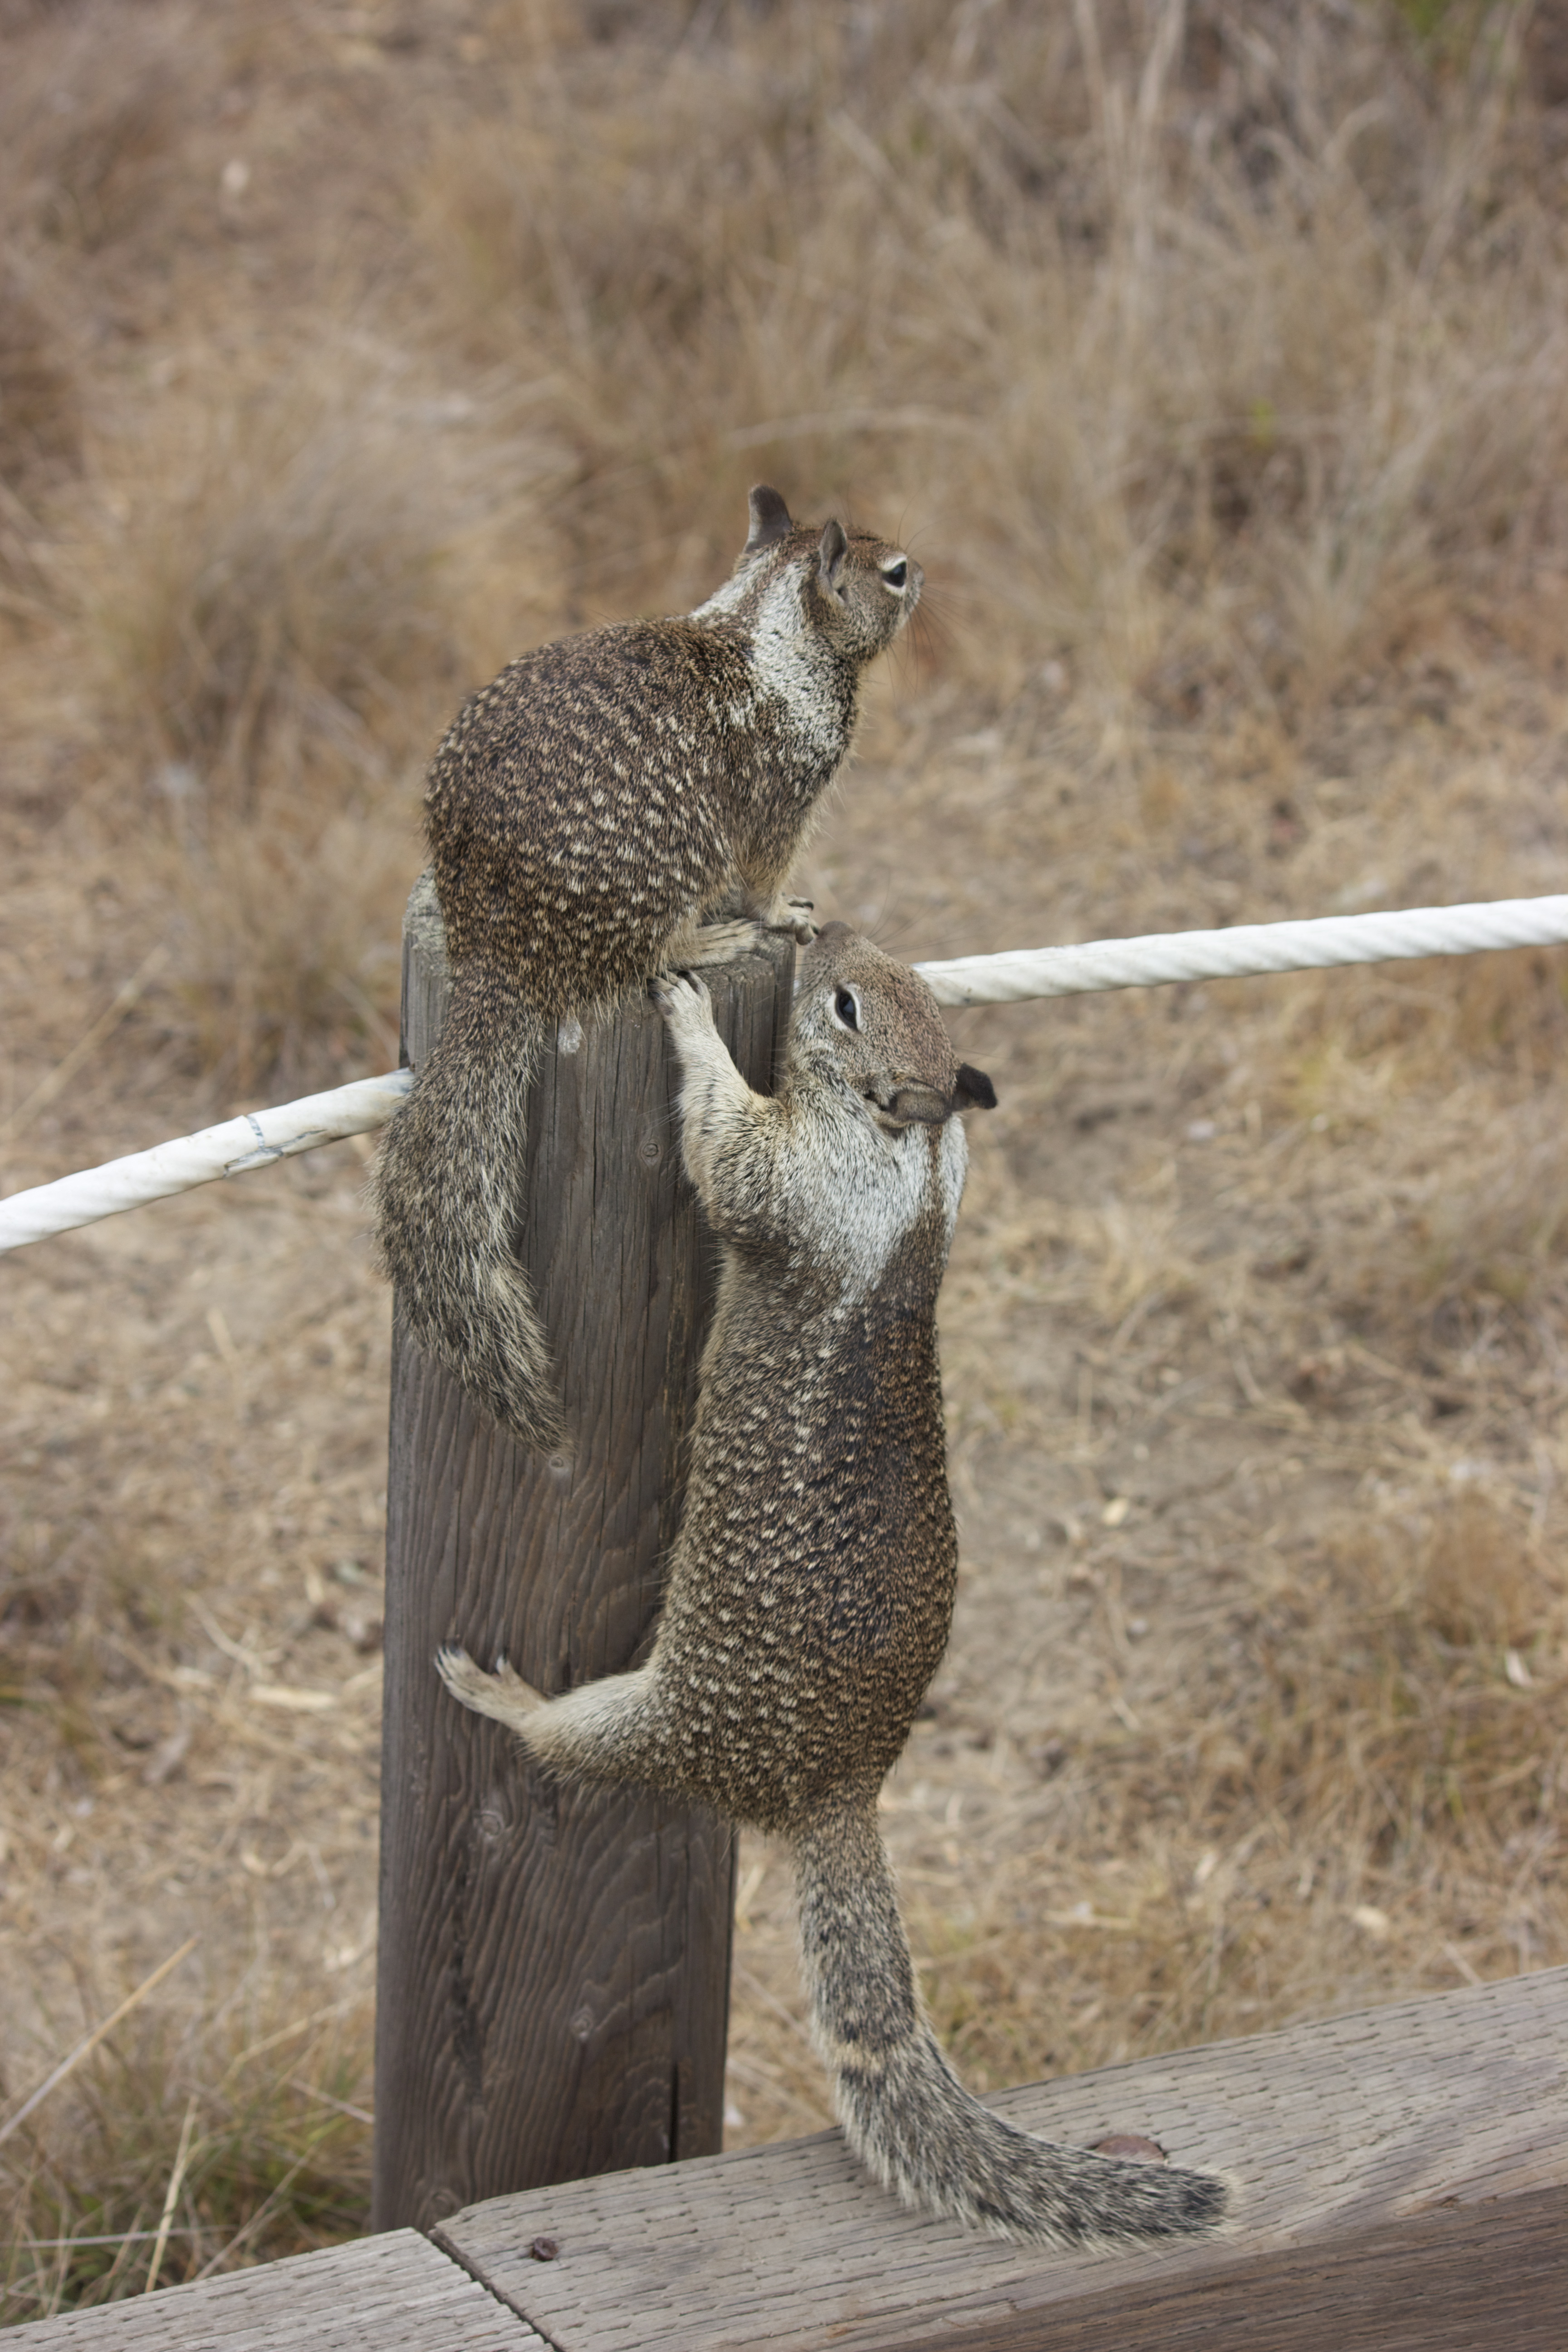 Two ground squirrels on a post, one sitting and one climbing.